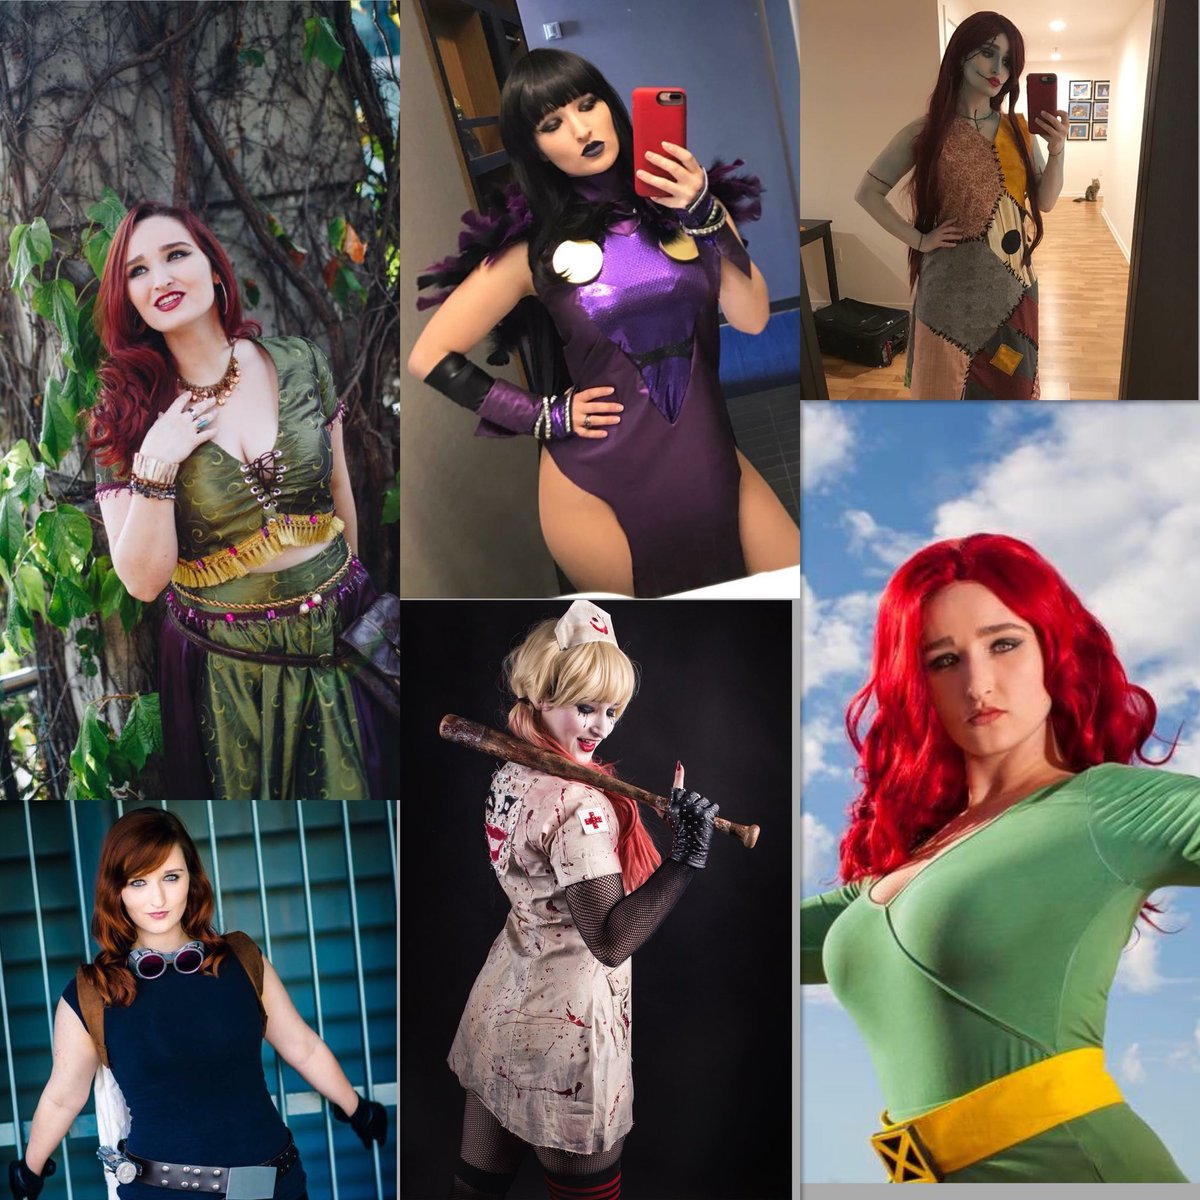 Less than 24 hours left to submit a question for .@Alexandriathred!  Best question wins a mystery prize pack! #cosplay #cosplayer <br>http://pic.twitter.com/HnwM6LZ3VG